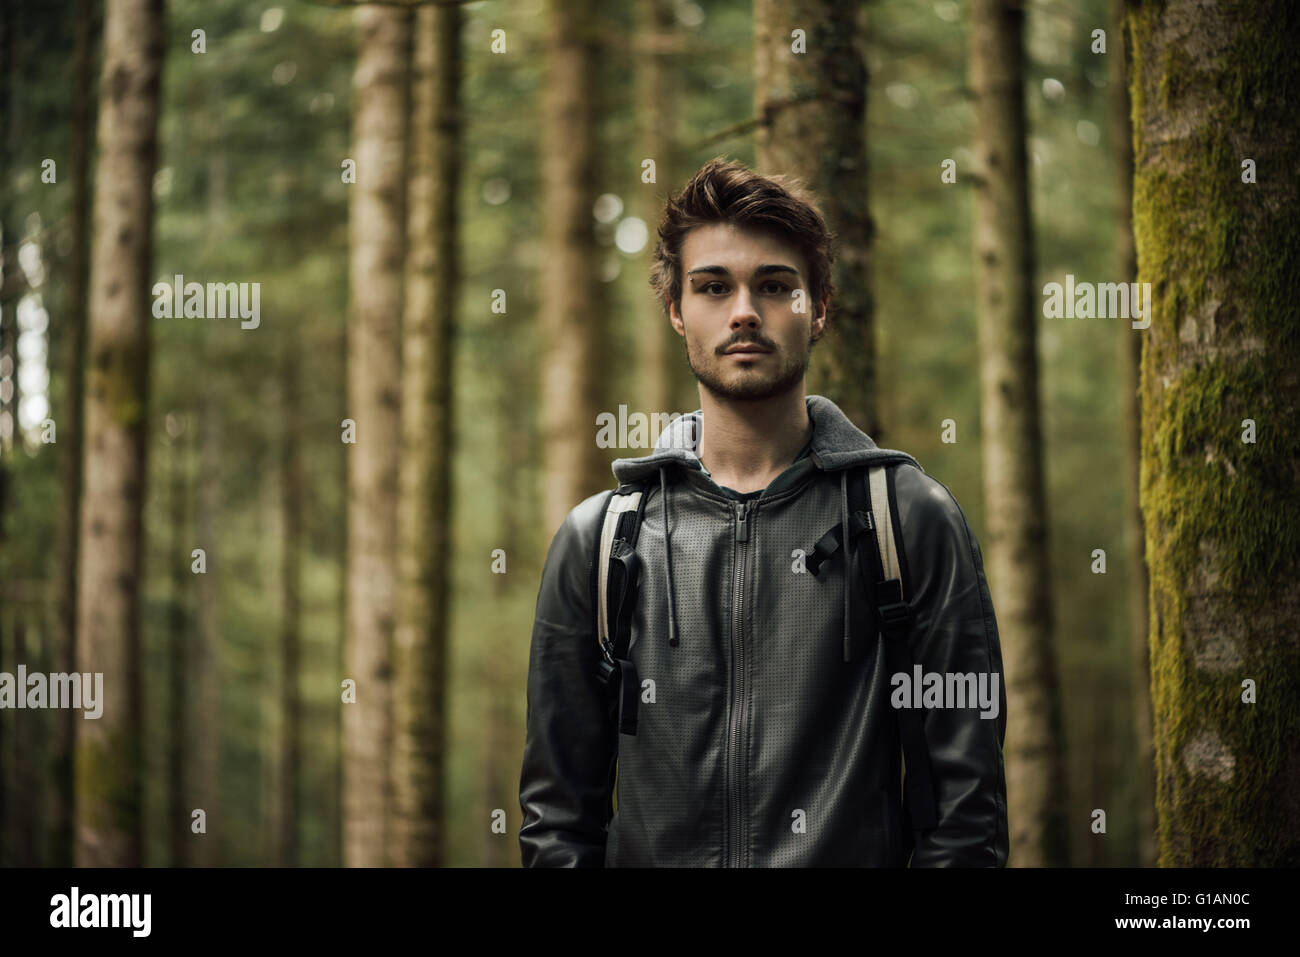 Young handsome man exploring a forest, he is looking at camera - Stock Image